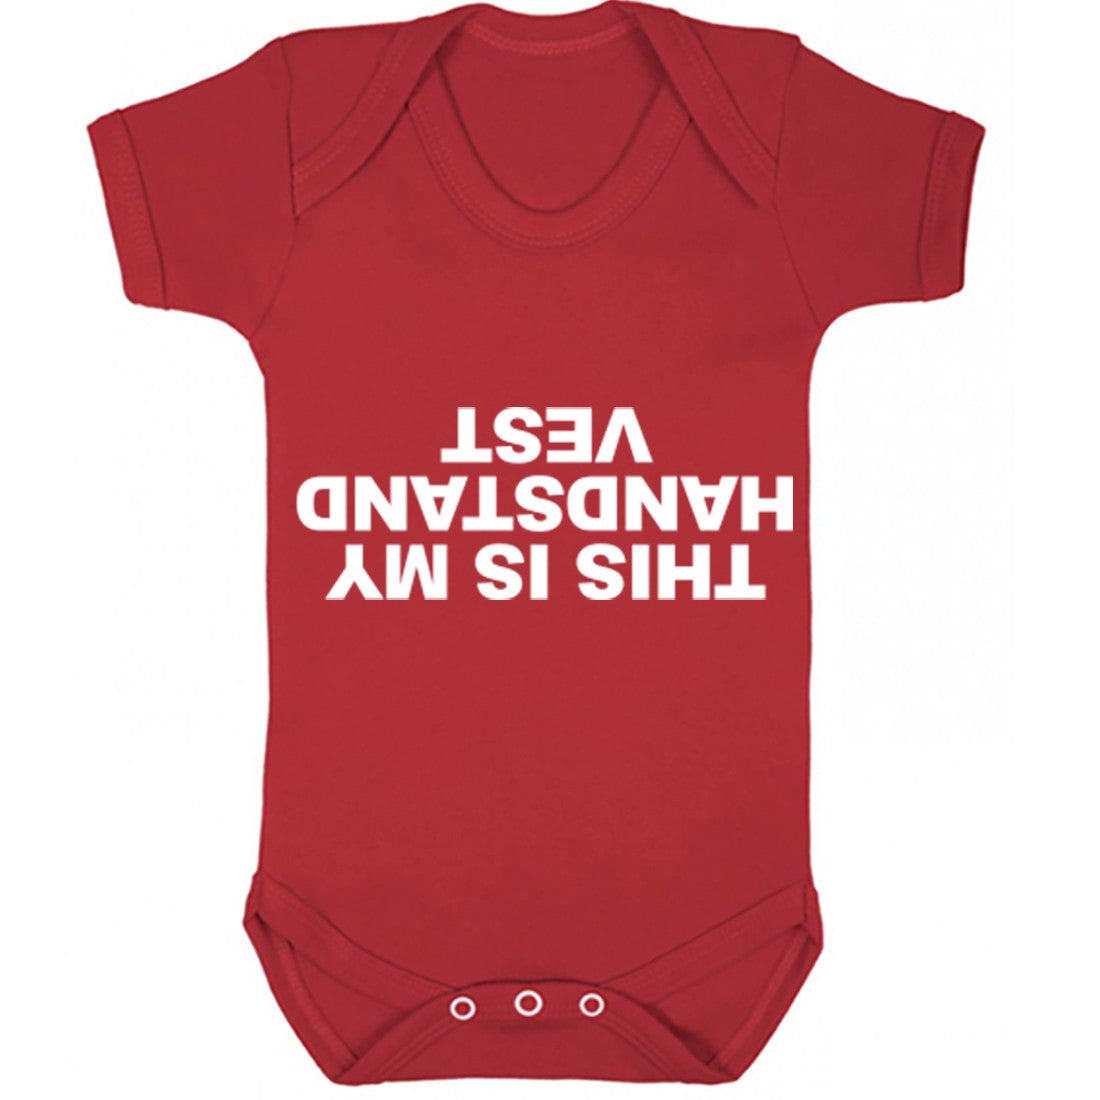 This Is My Handstand Baby Vest K0977 - Illustrated Identity Ltd.